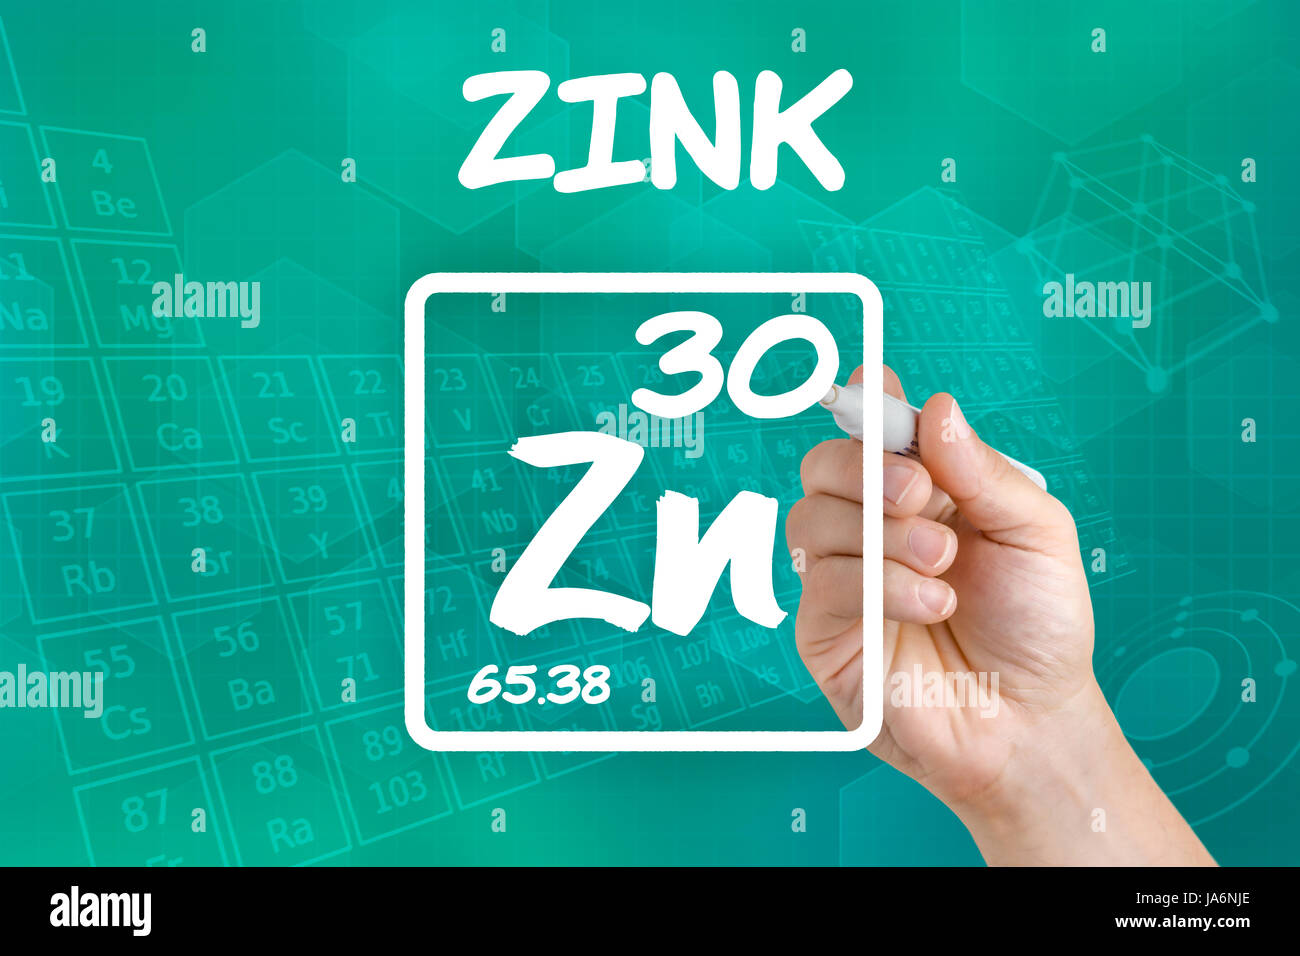 Symbol of the chemical element zinc stock photo 143978198 alamy symbol of the chemical element zinc buycottarizona Gallery